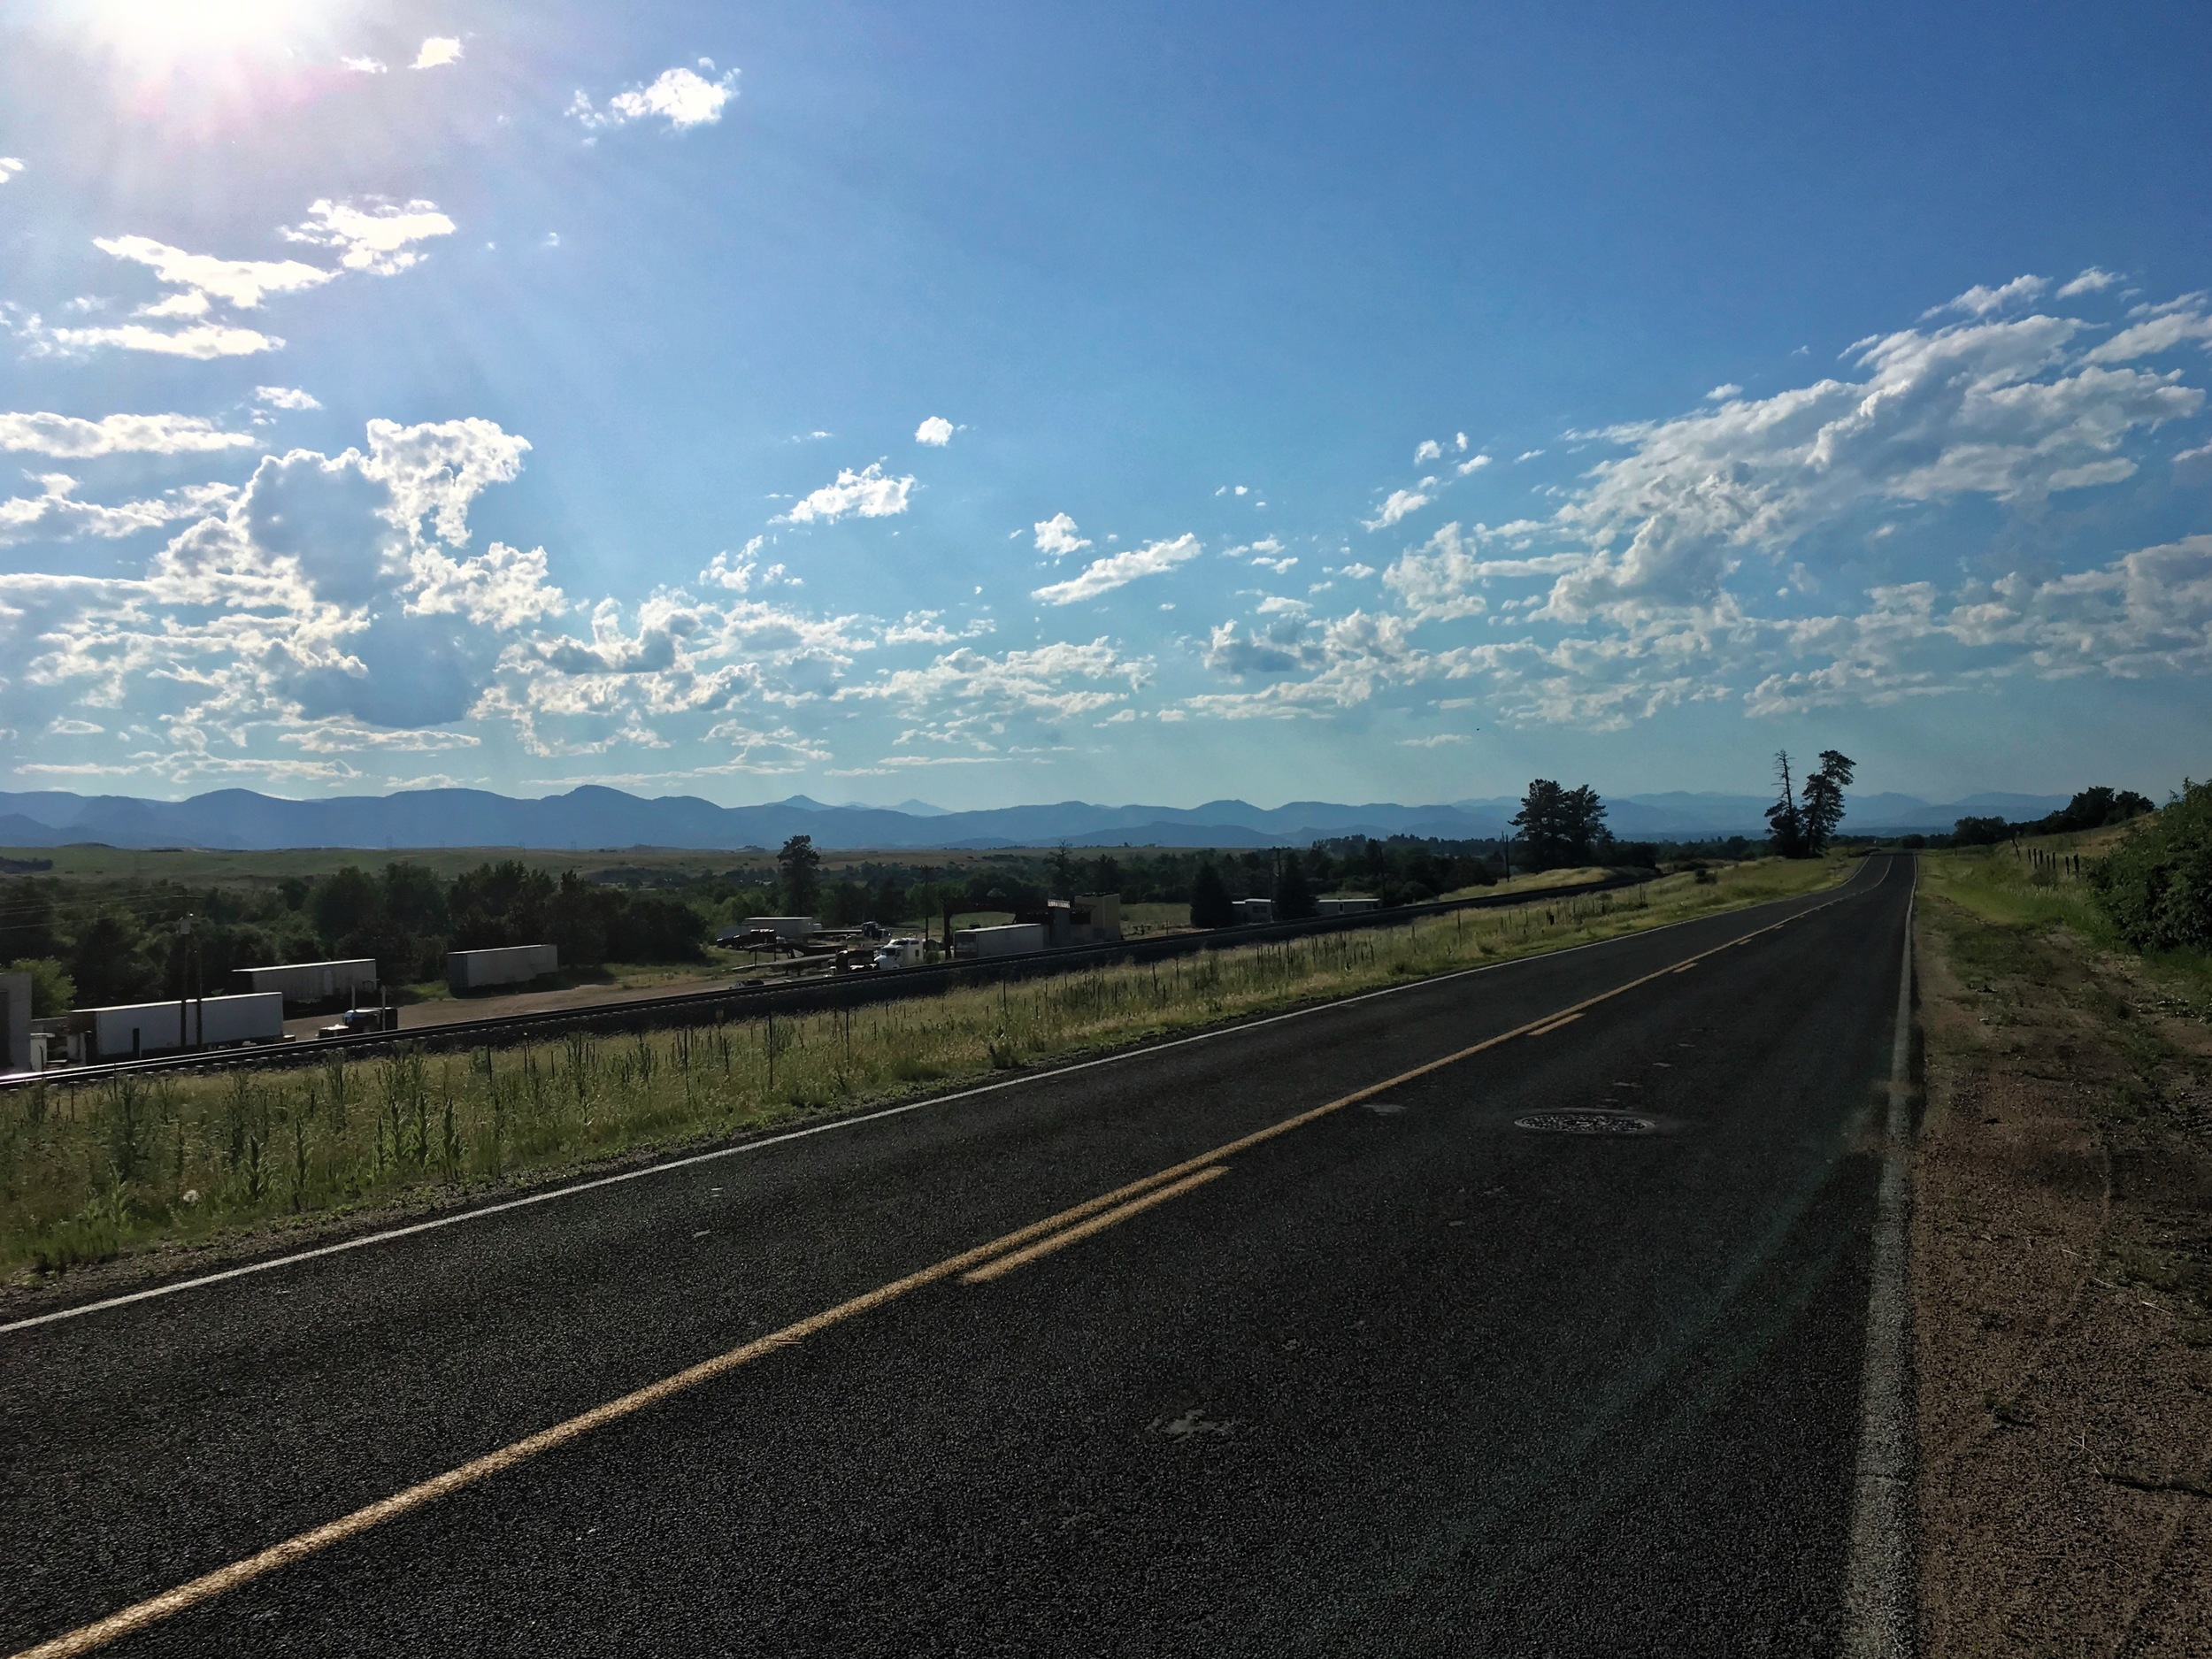 The view on 105 on the way north into Littleton. I had forgotten how lovely the front range can be.